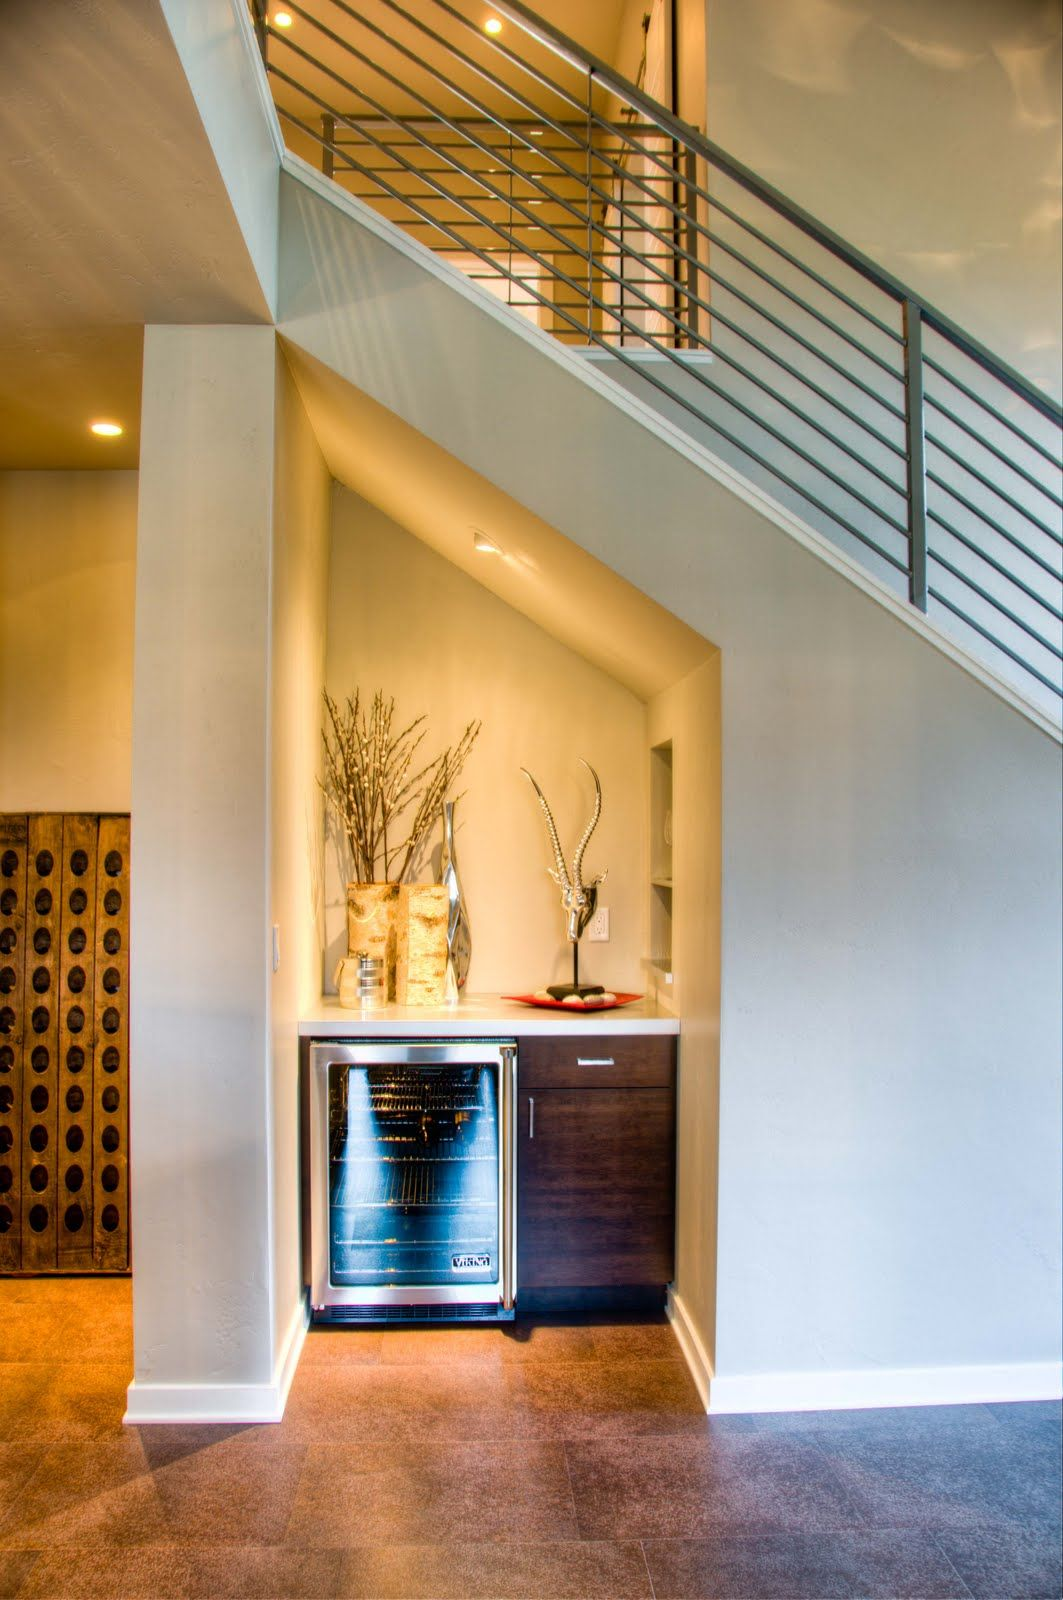 Basement Stairs Design: Great Use Of Space Under Stair Well. This Mini Bar Has A